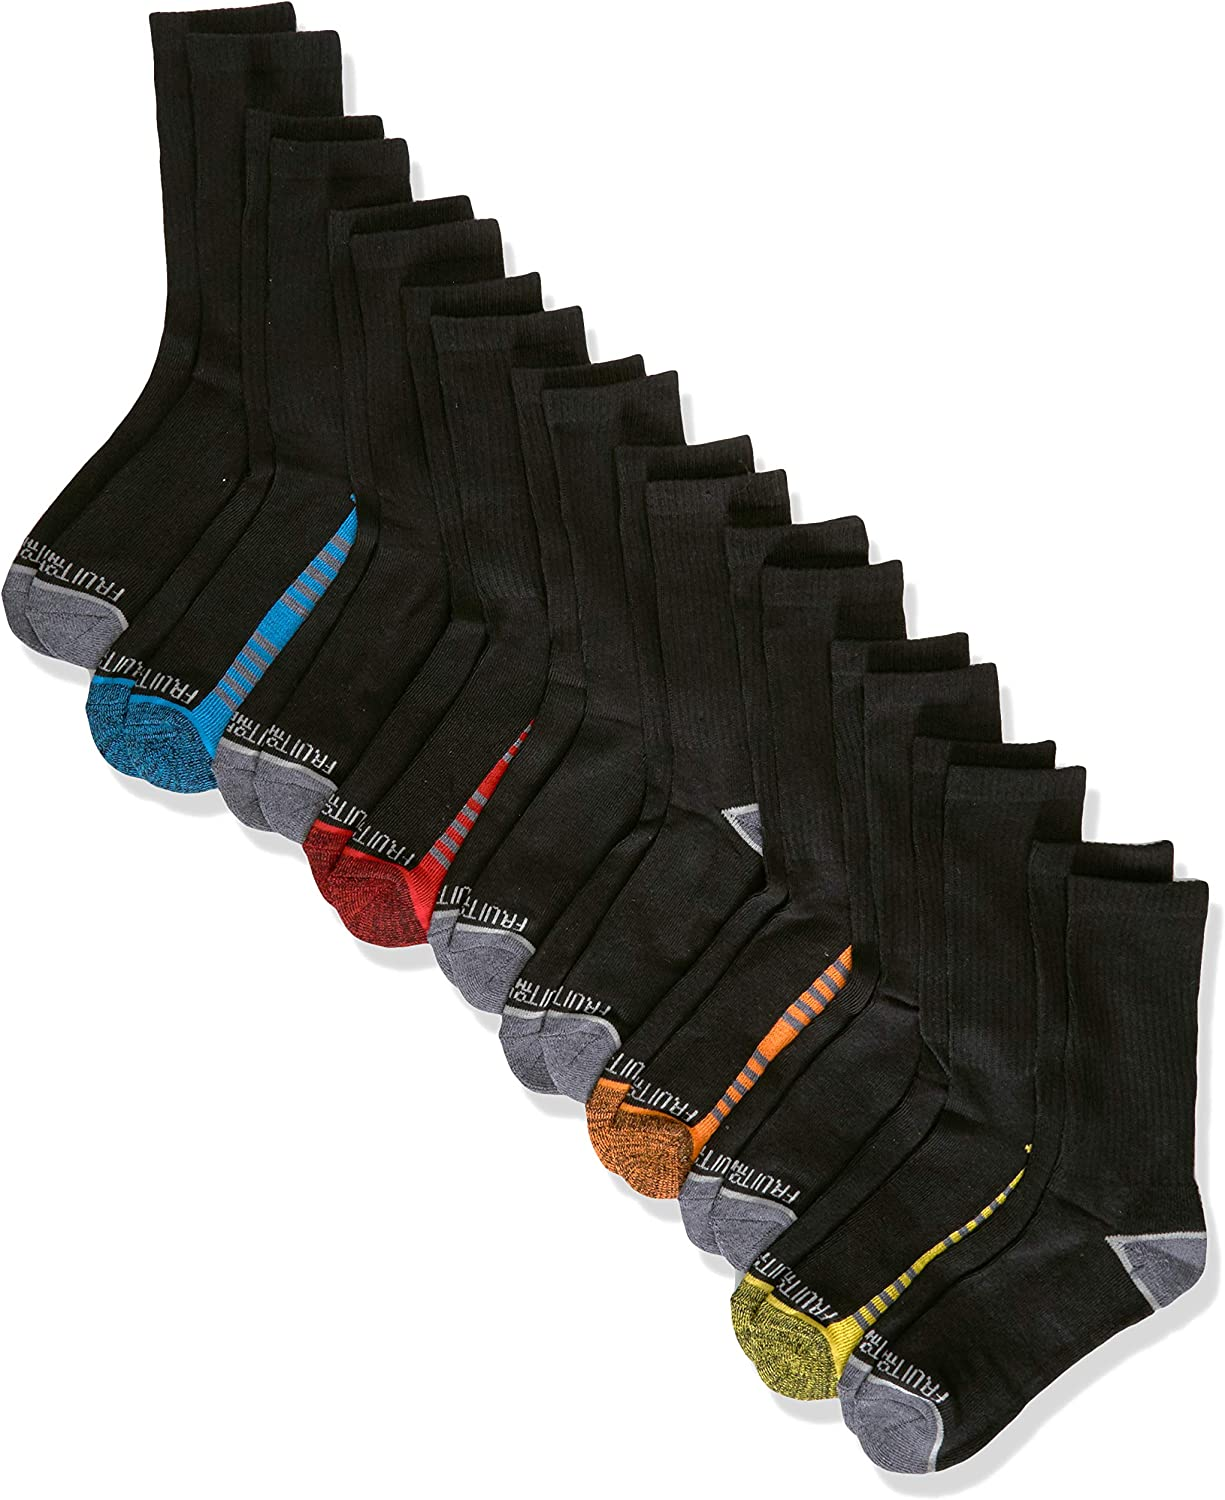 Fruit of the Loom boys 10 Pack Crew Casual Sock, Black Assorted, Shoe Size 3-9 US: Clothing